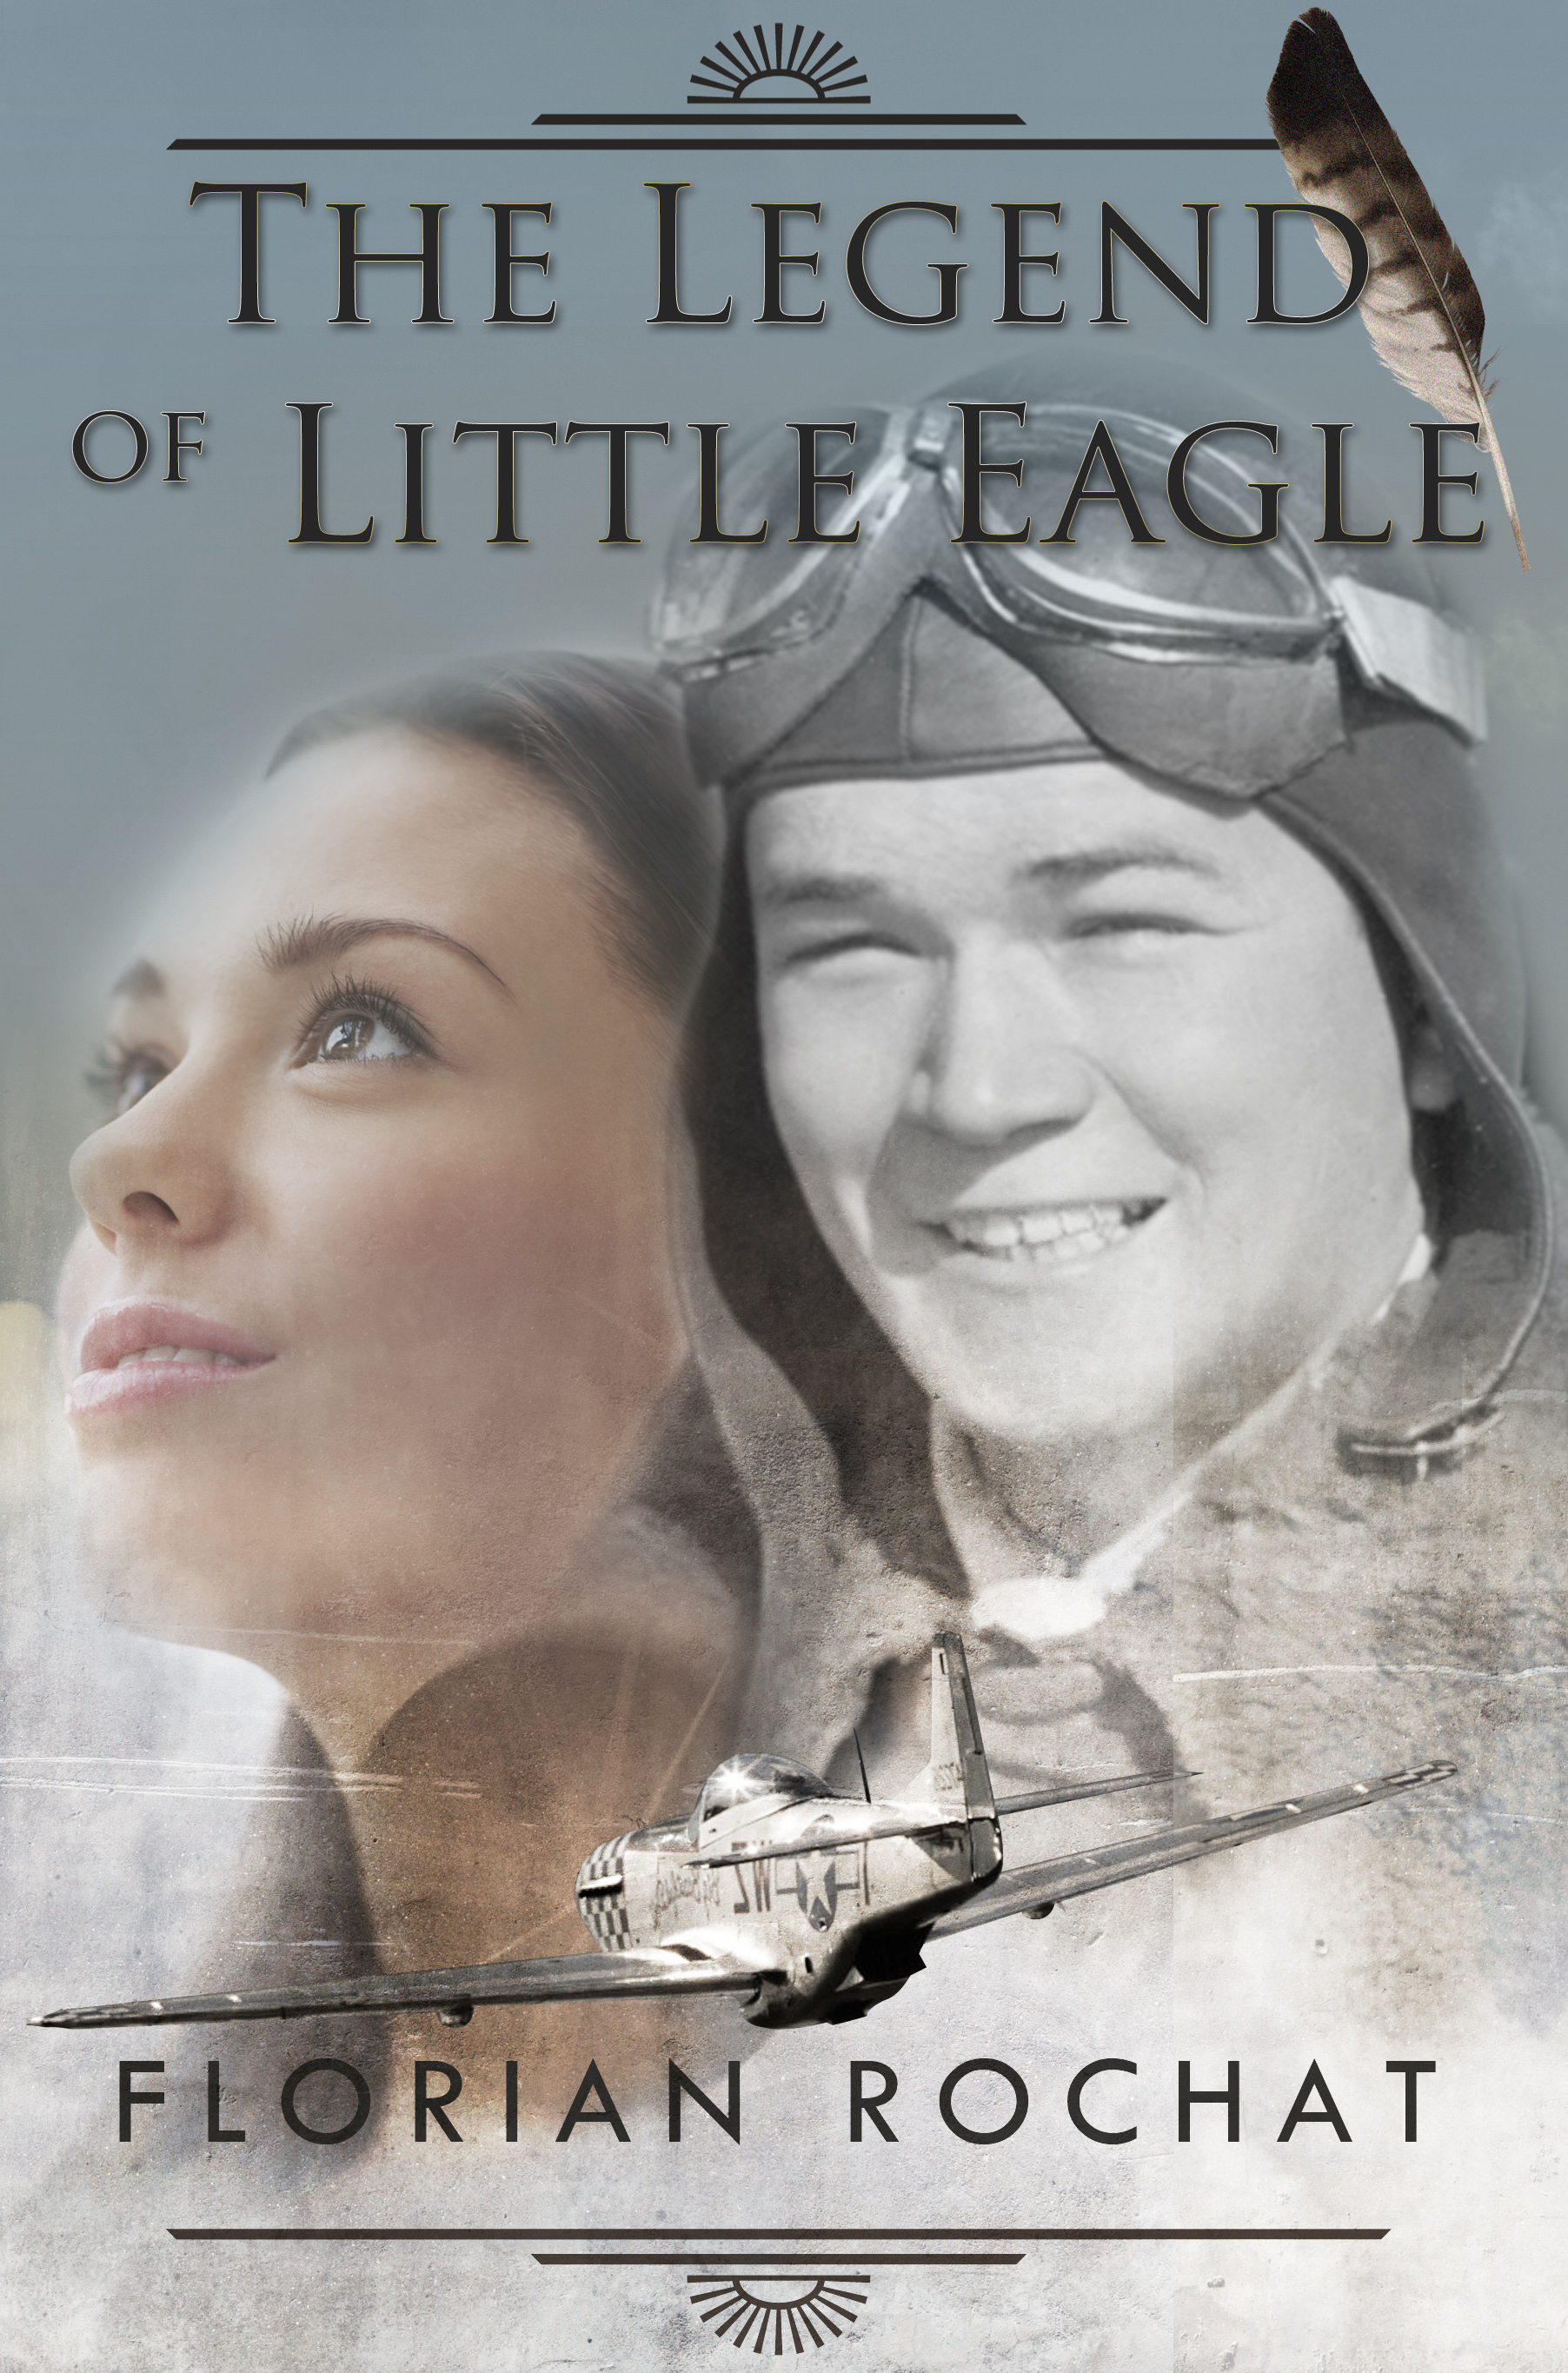 Florian Rochat's book cover - The legend of Little Eagle